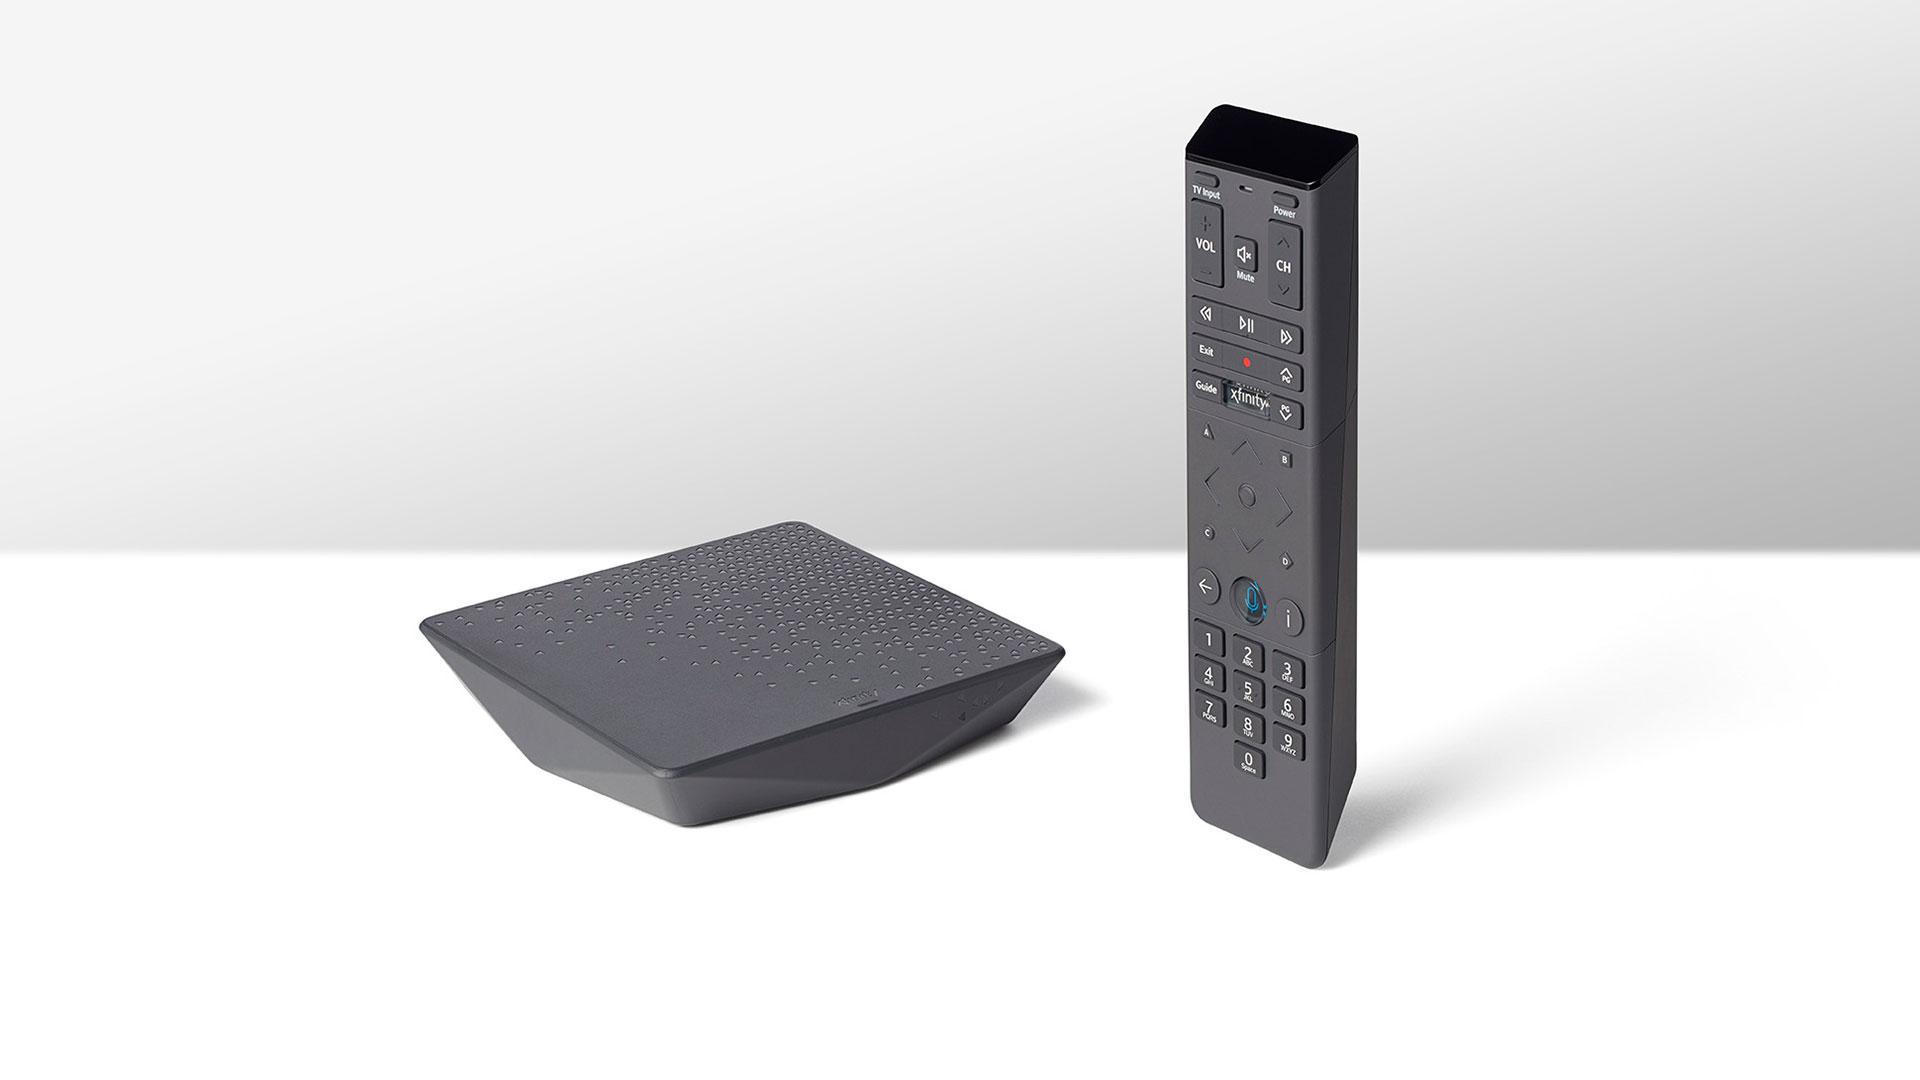 Comcast S Flex Streaming Box Is Free But It May Not Be For You